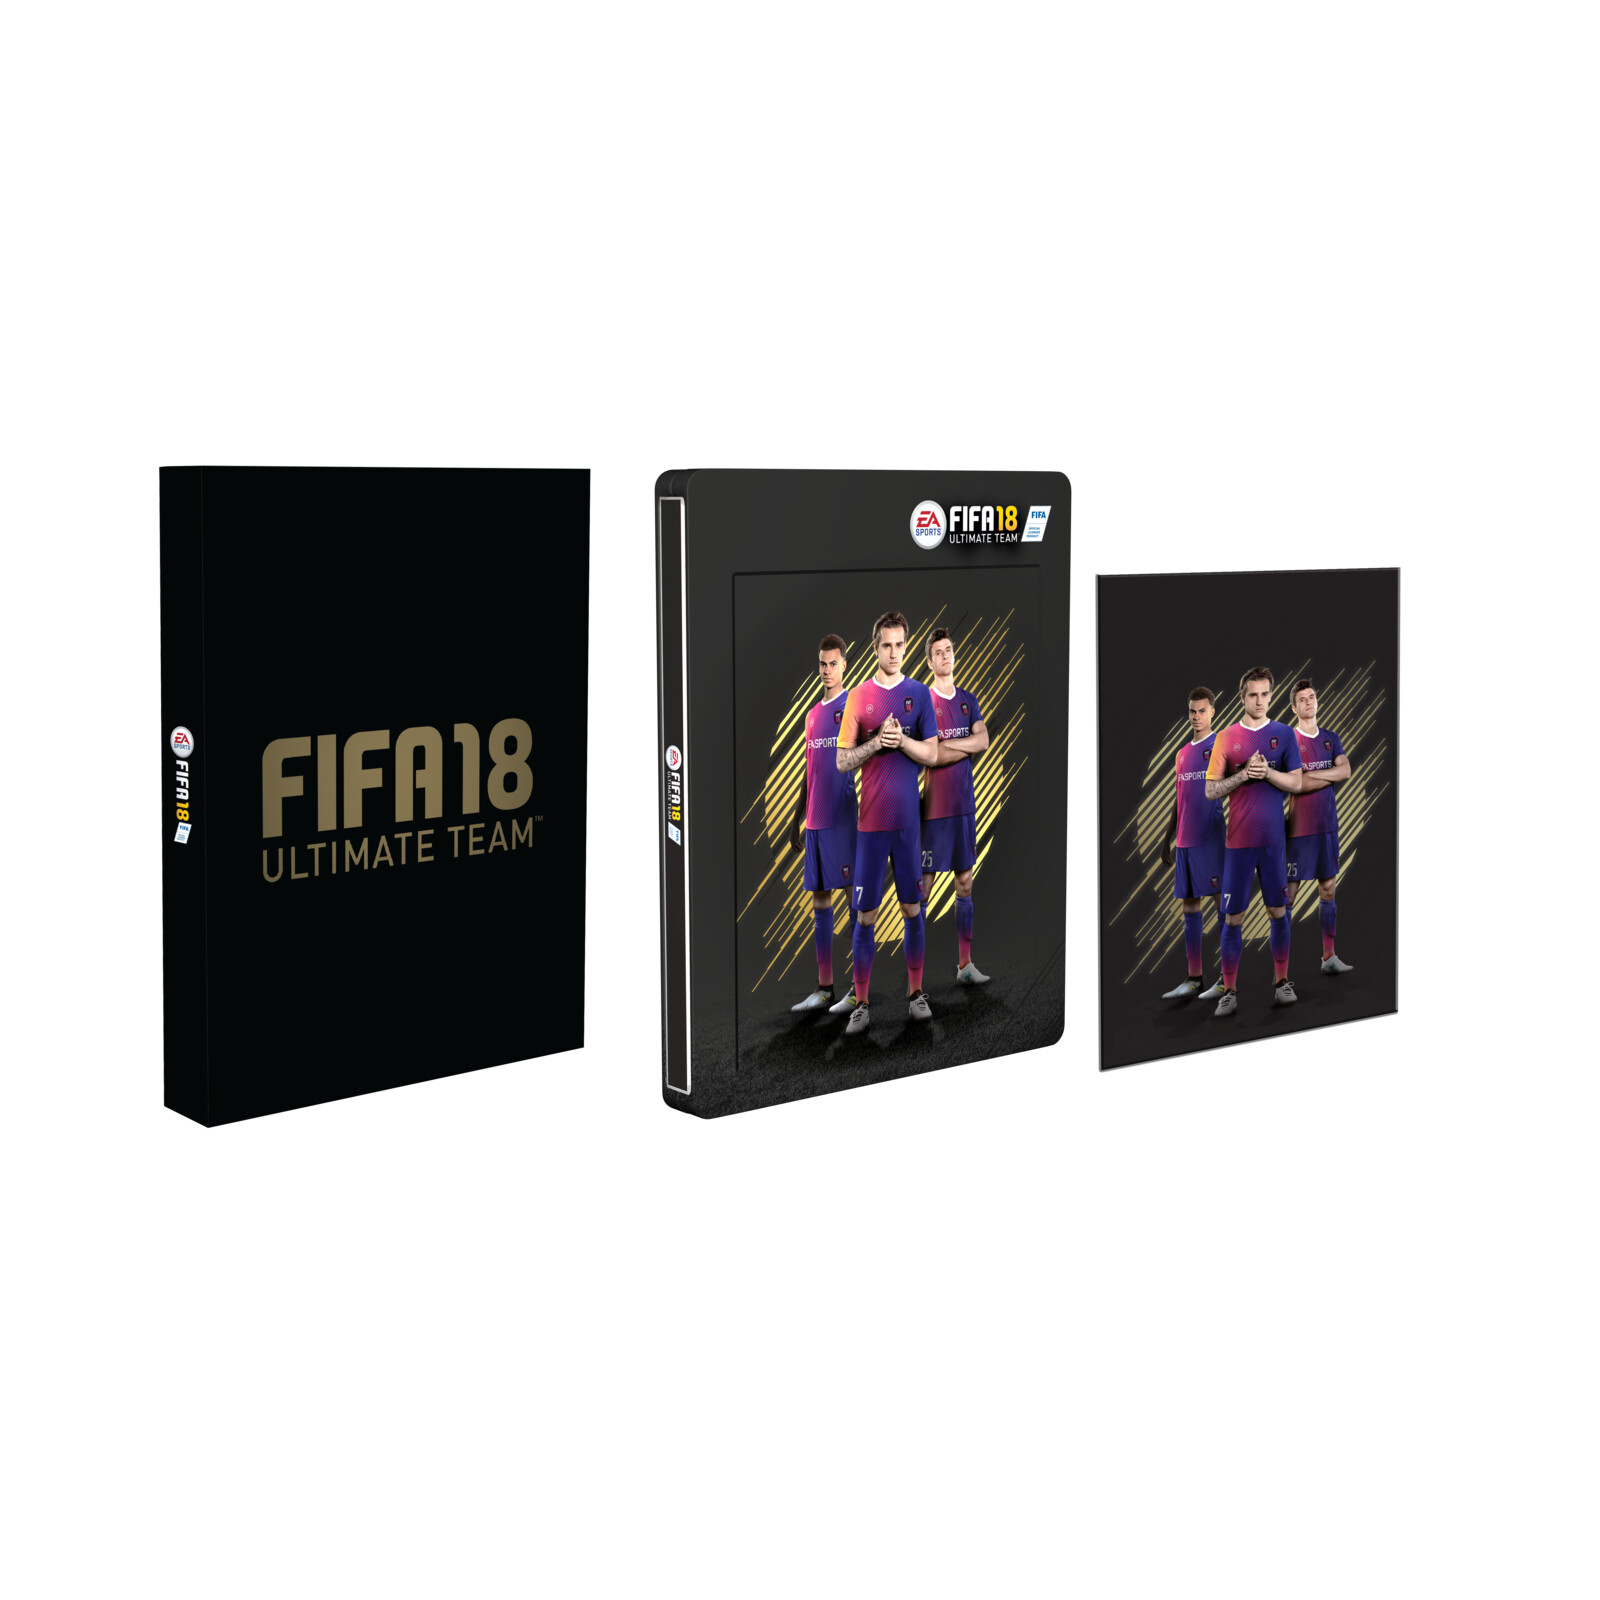 fifa 18 3d lenticular steelbook ebay. Black Bedroom Furniture Sets. Home Design Ideas